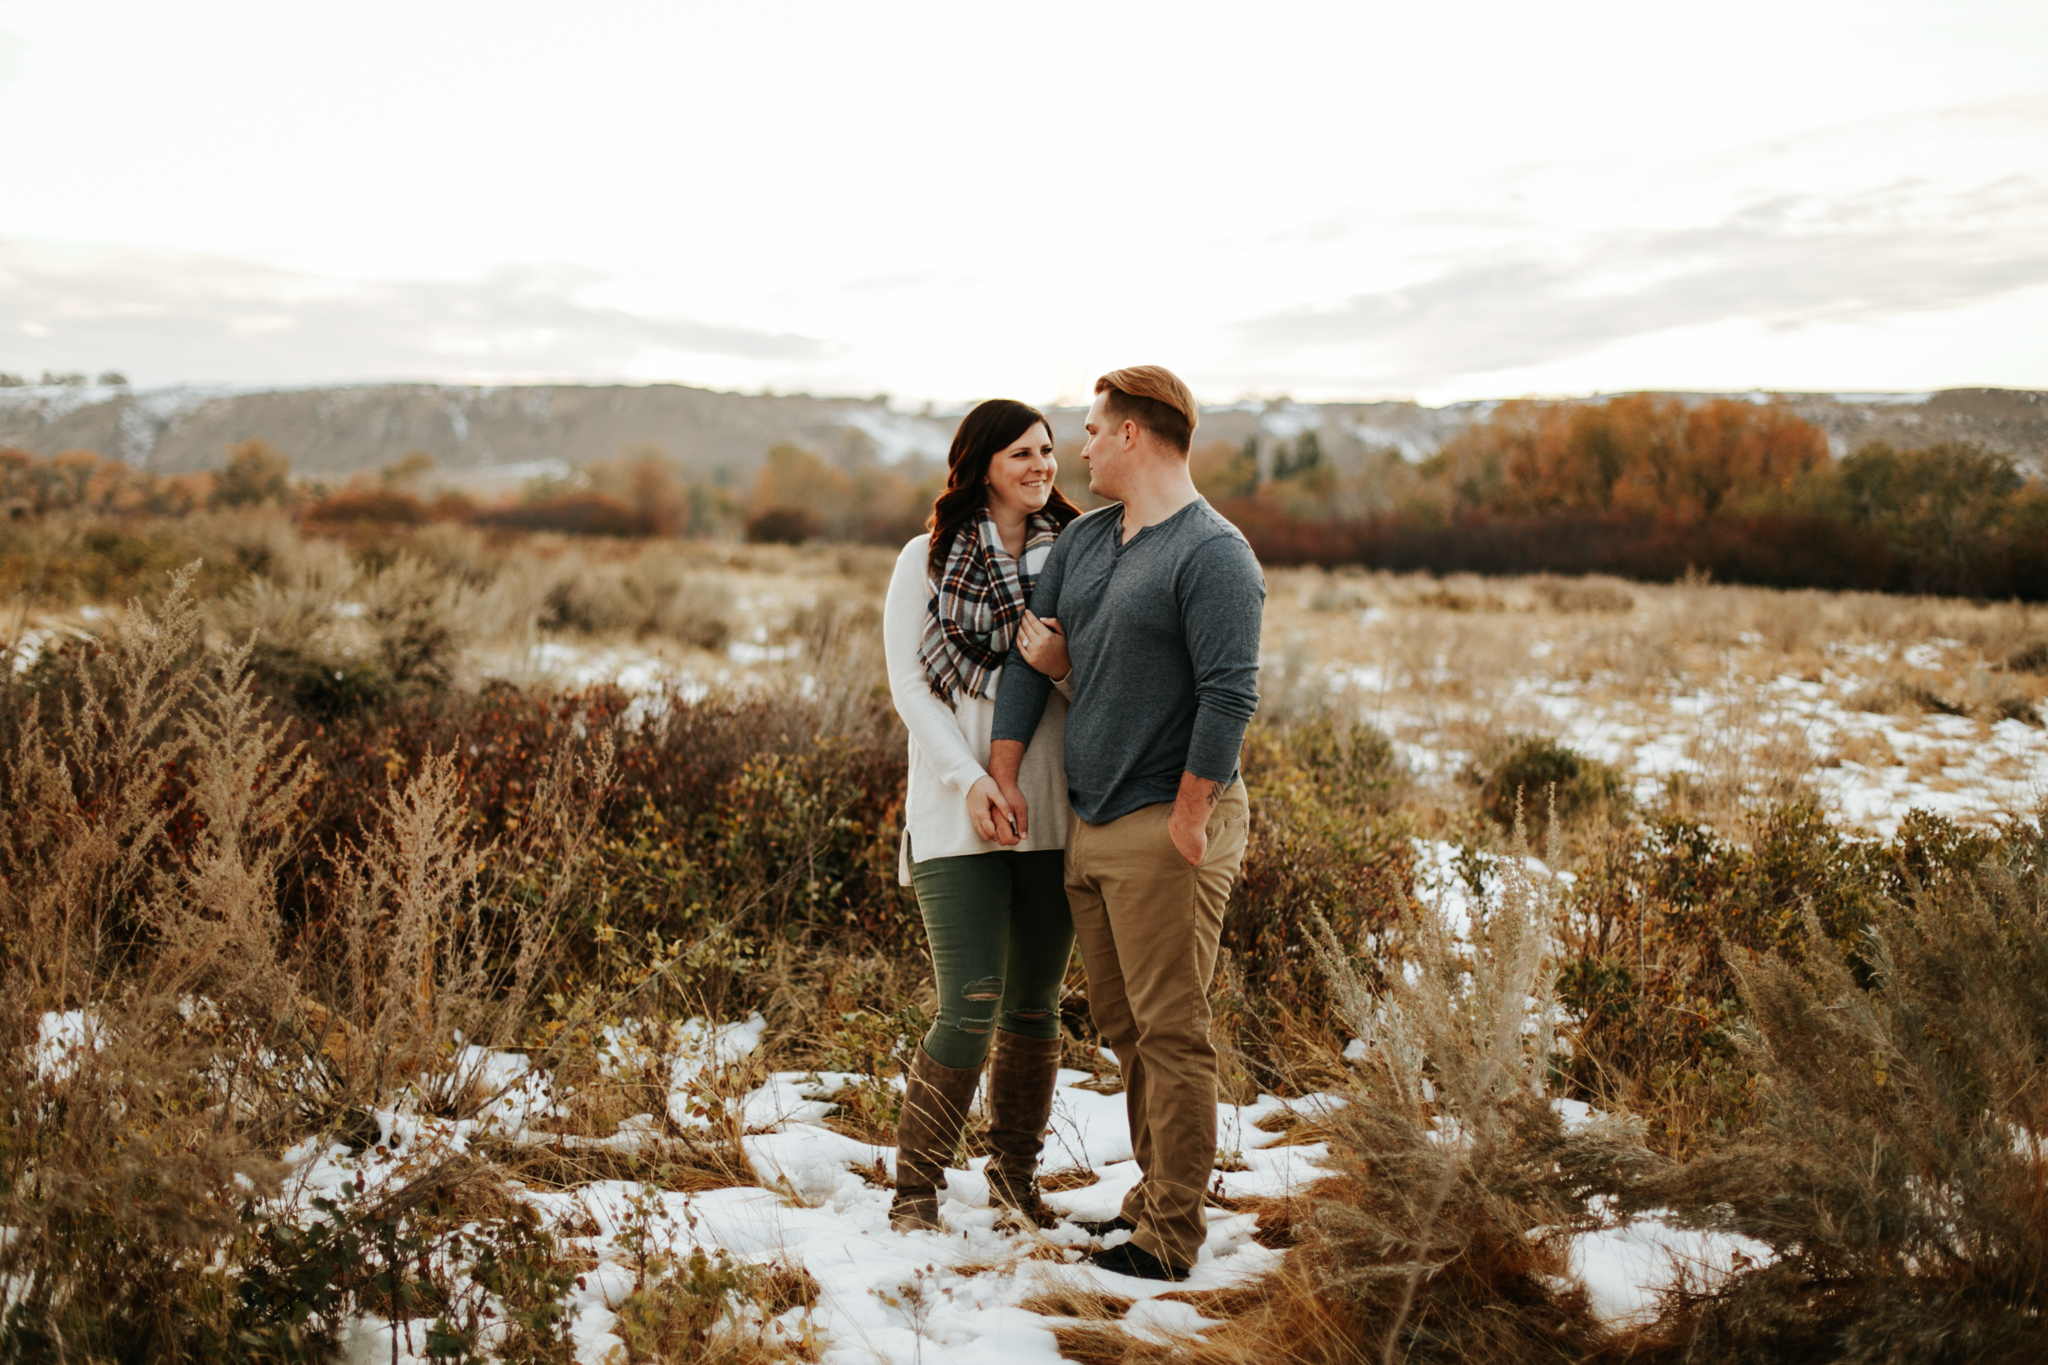 lethbridge-photographer-love-and-be-loved-photography-christy-bryan-fall-autumn-engagement-photo-image-picture-59.jpg